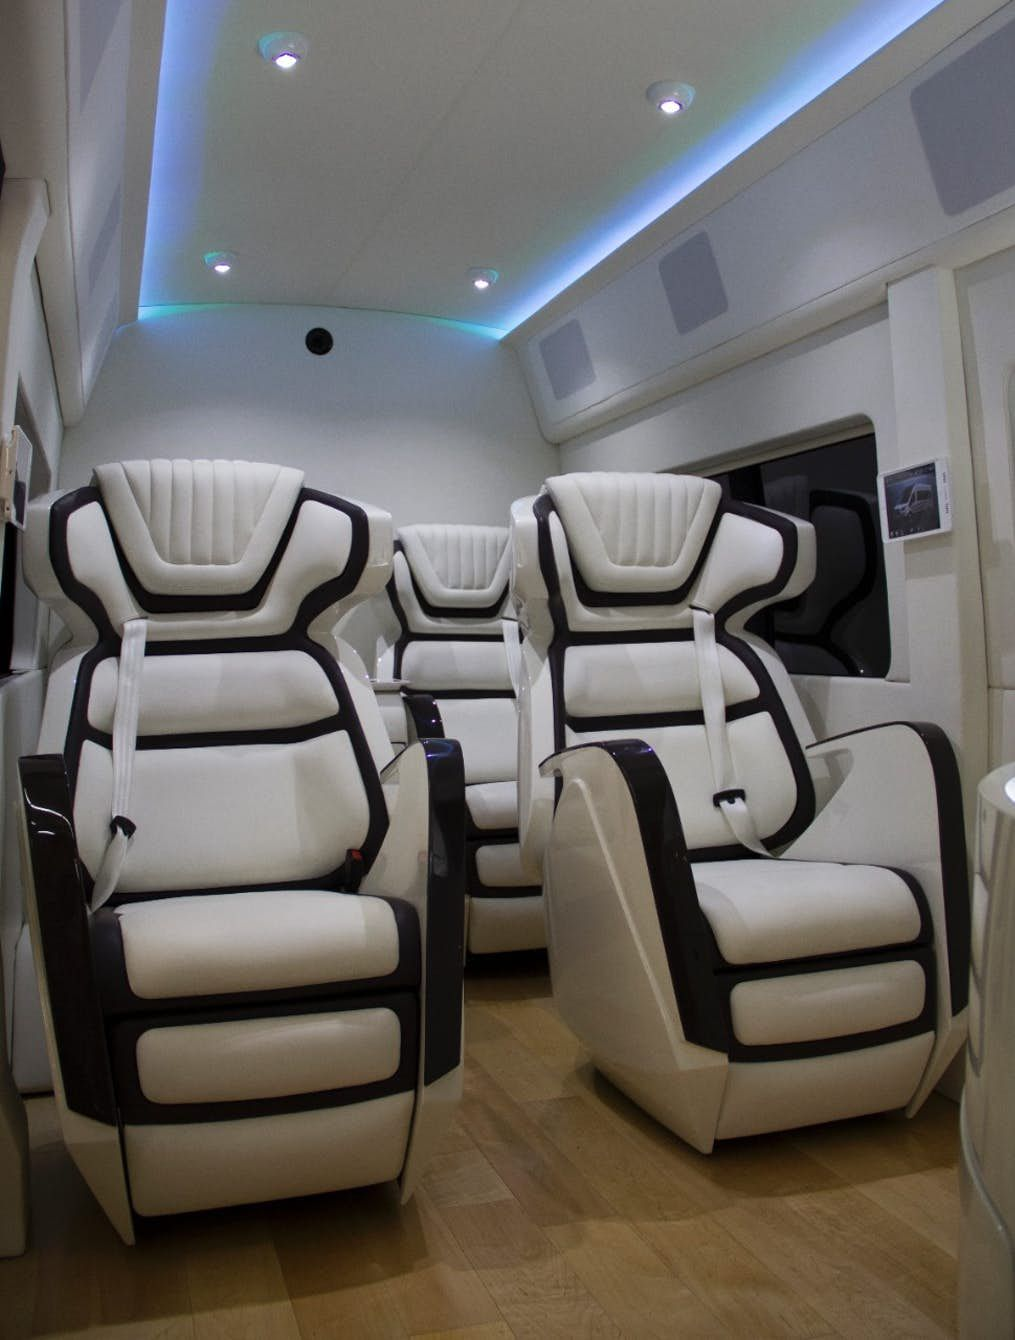 Ford Showcases Tricked Out Transit Van Luxury Car Interior